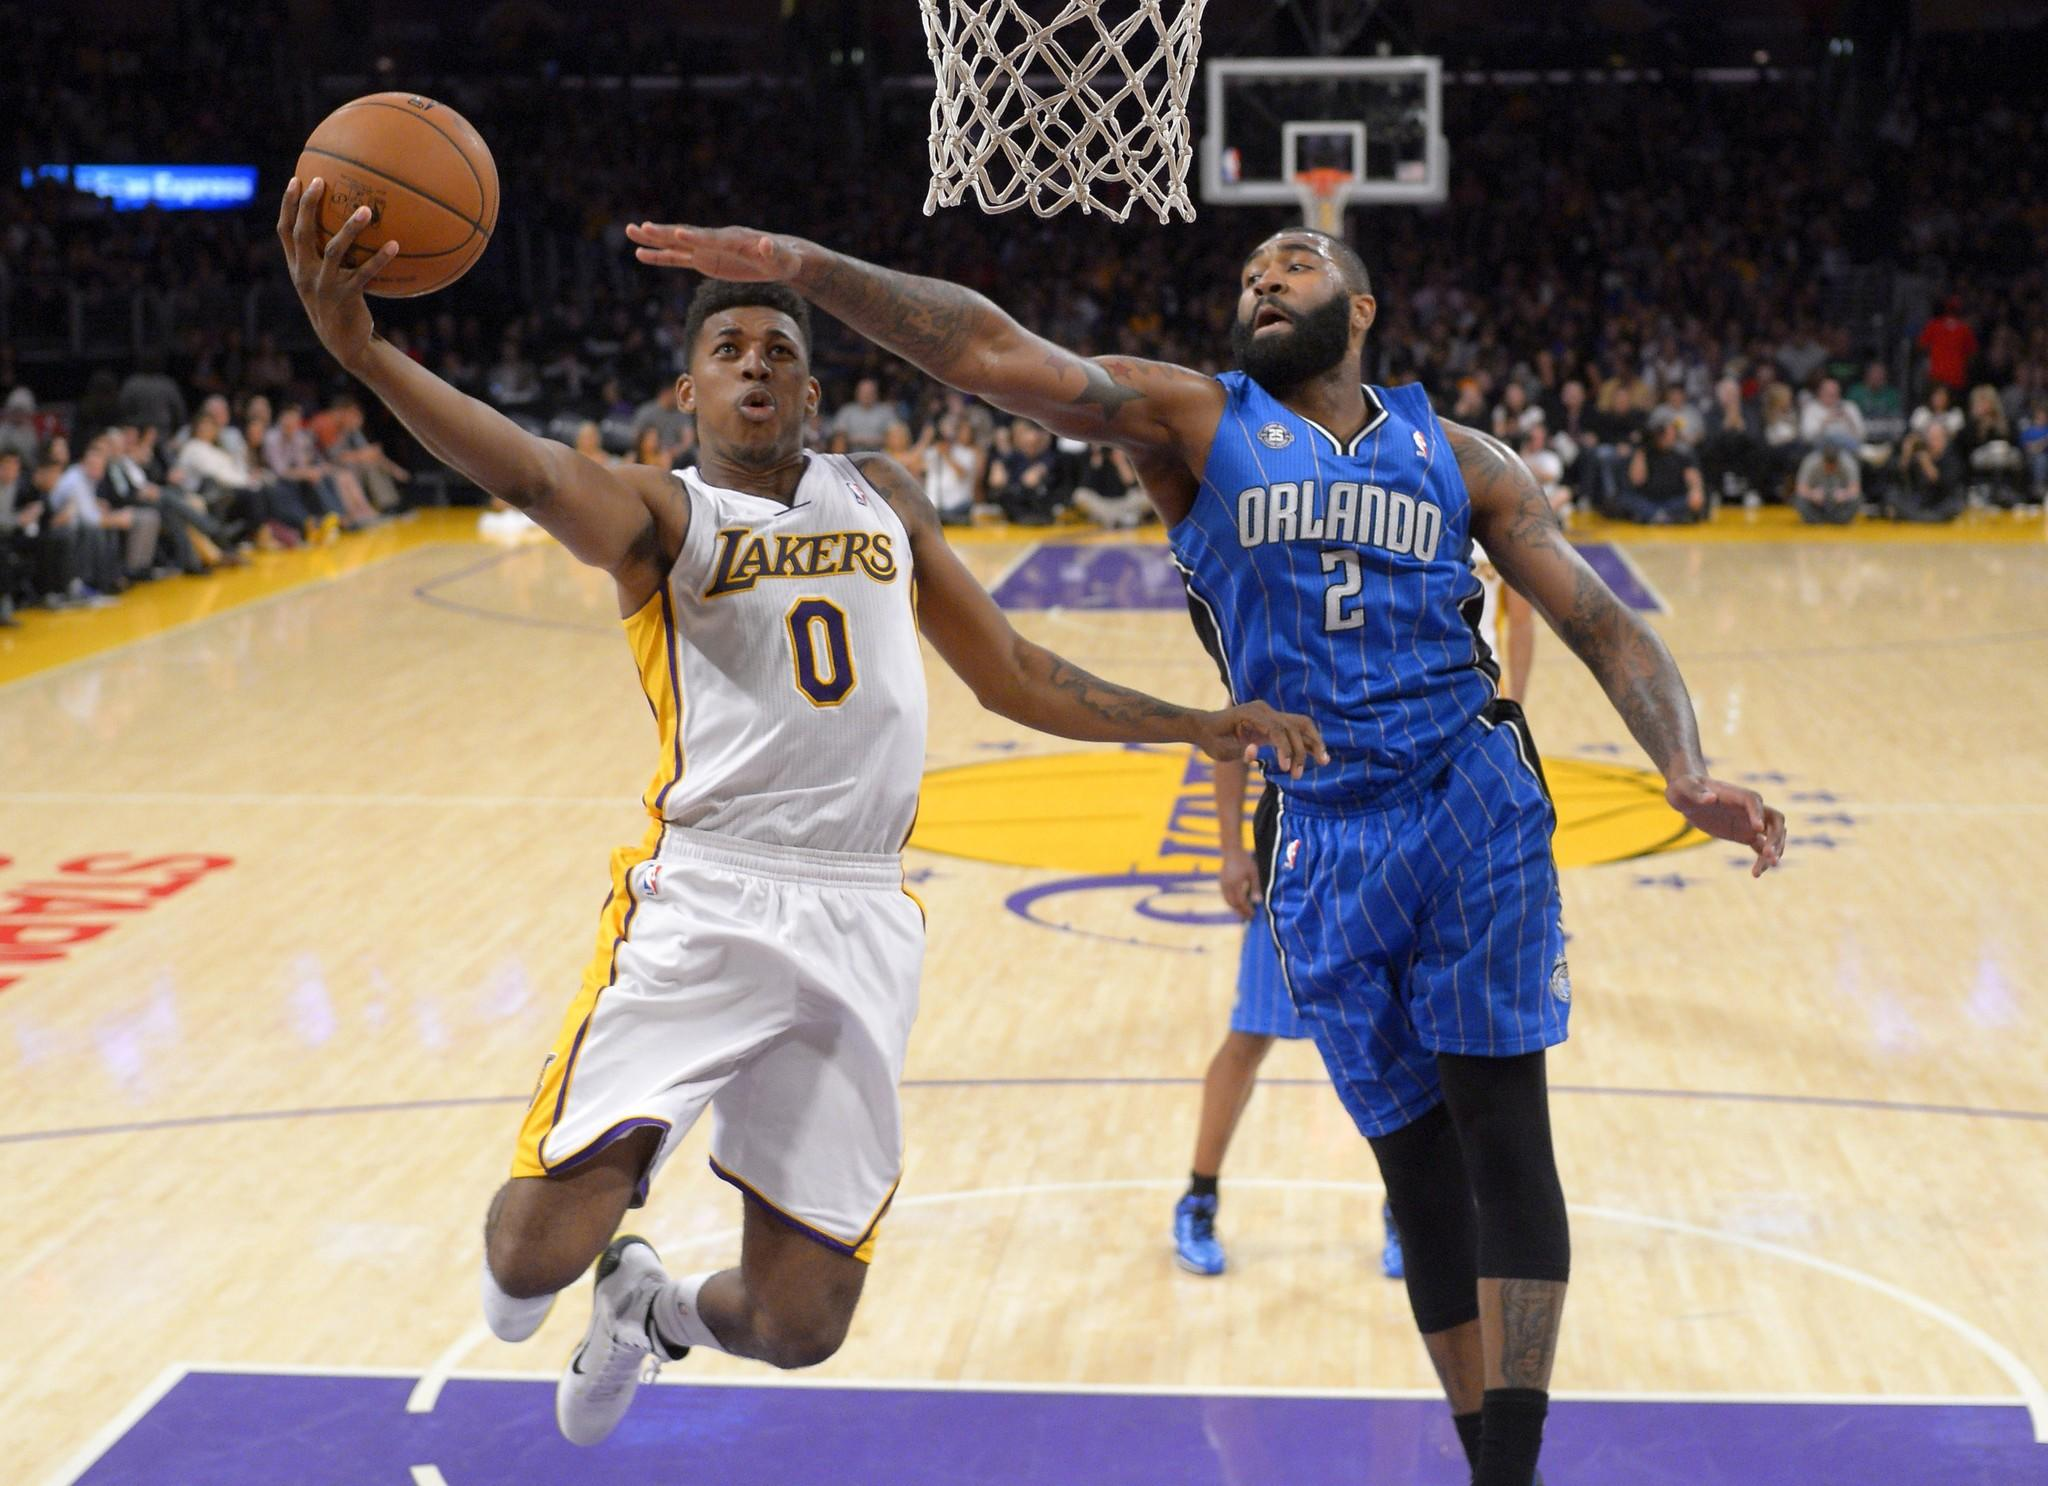 Lakers forward Nick Young has his layup challenged by Magic forward Kyle O'Quinn in the second half.